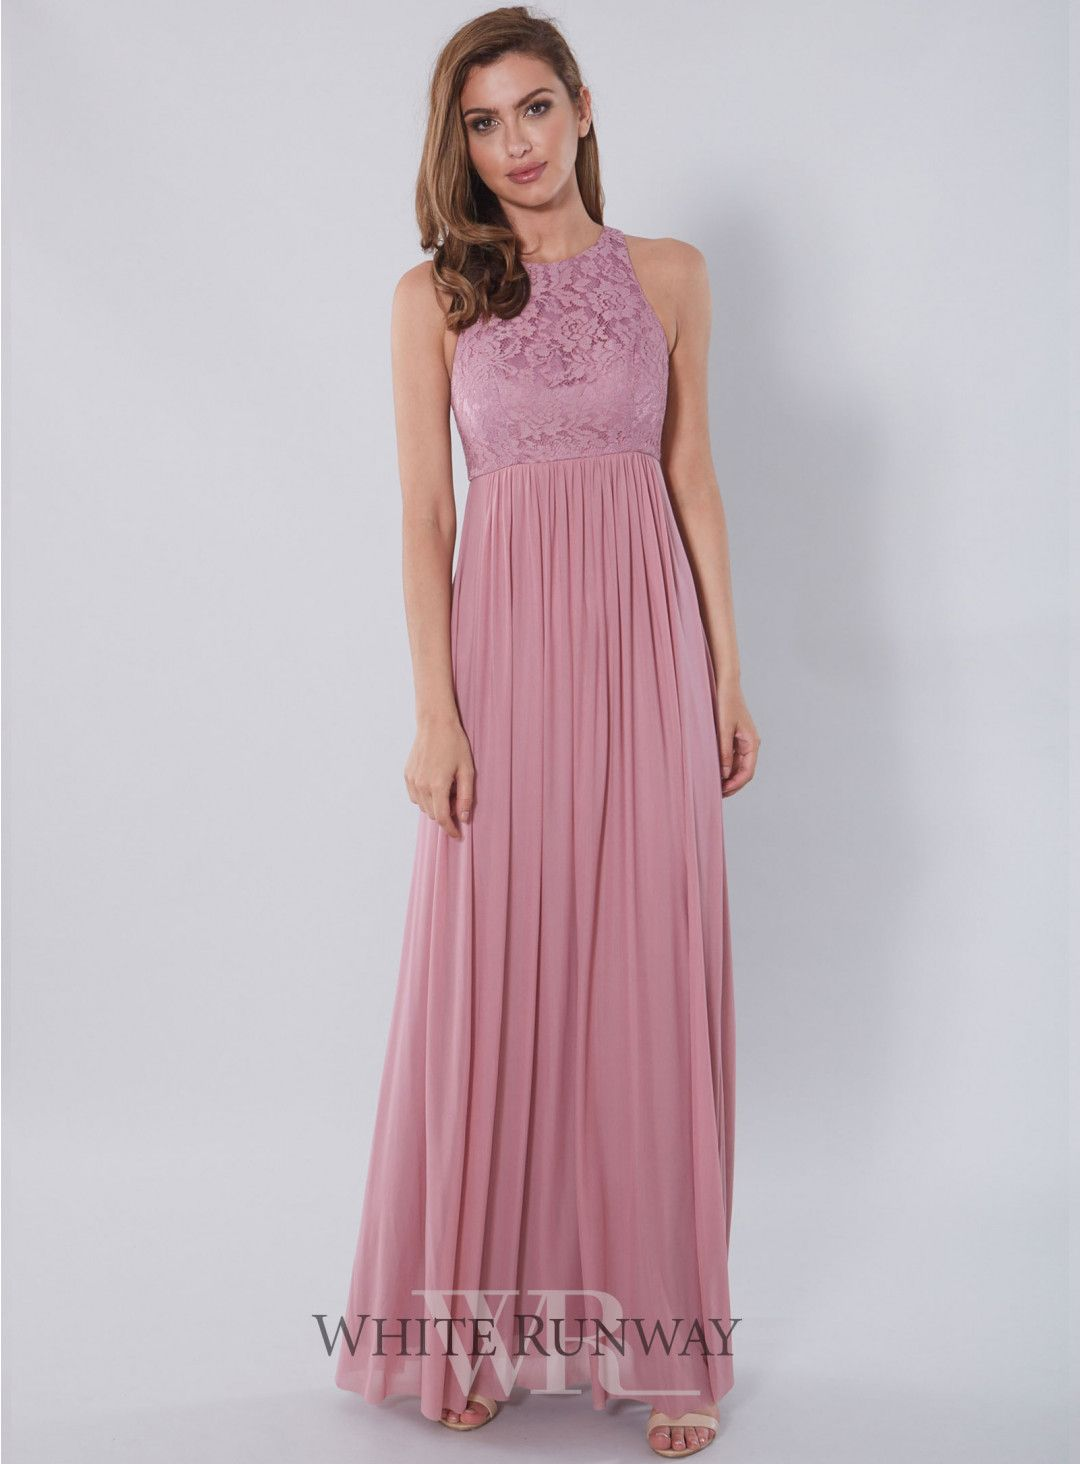 Aneeta lace dress in the wedding pros the perfect palette